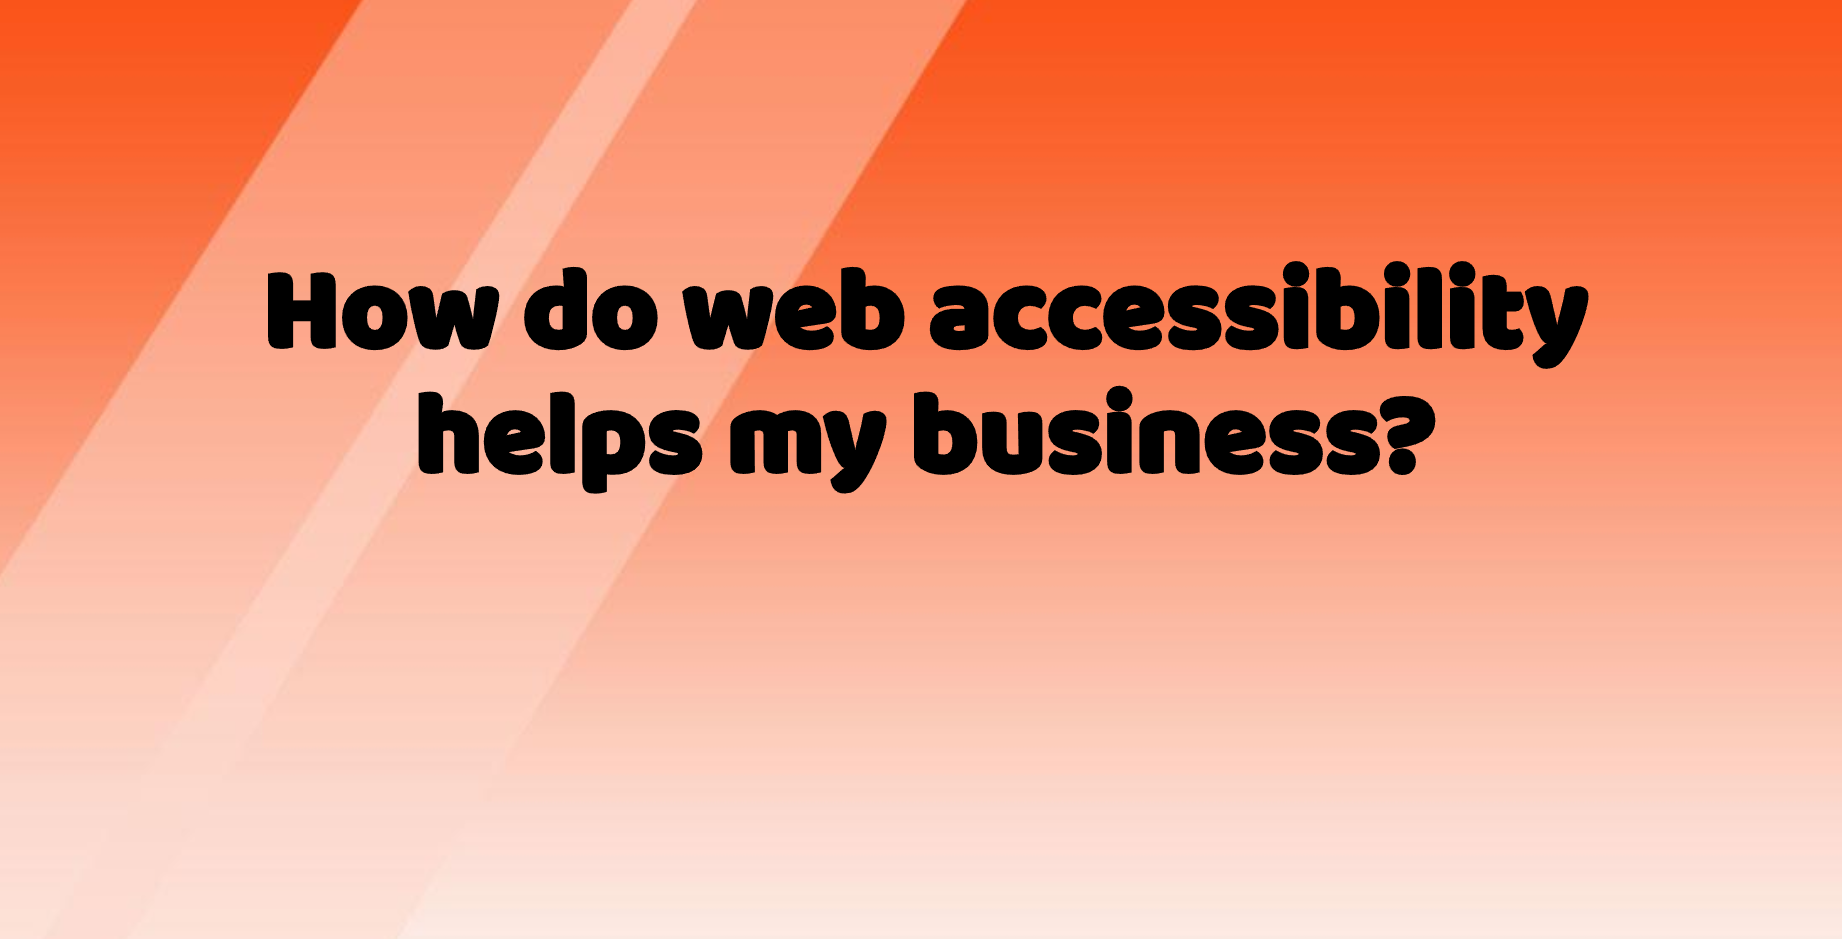 How do web accessibility help my business